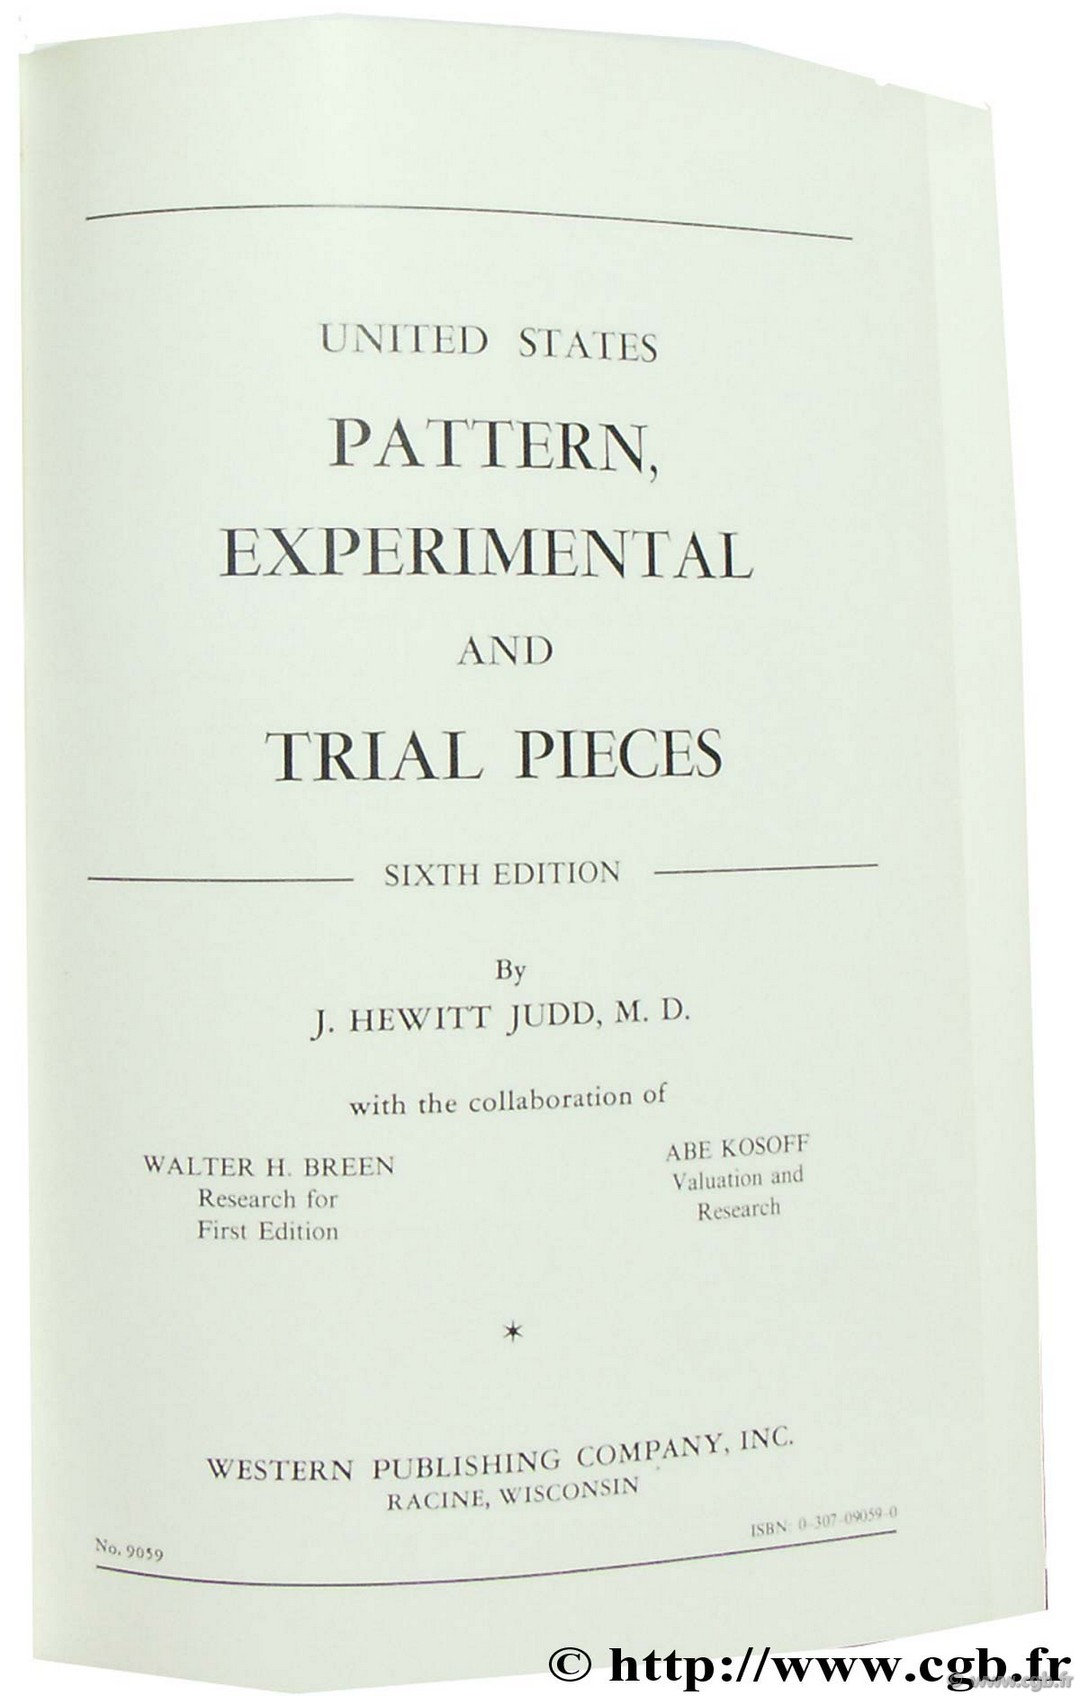 United States Pattern, Experimental and Trial Pieces sixth edition